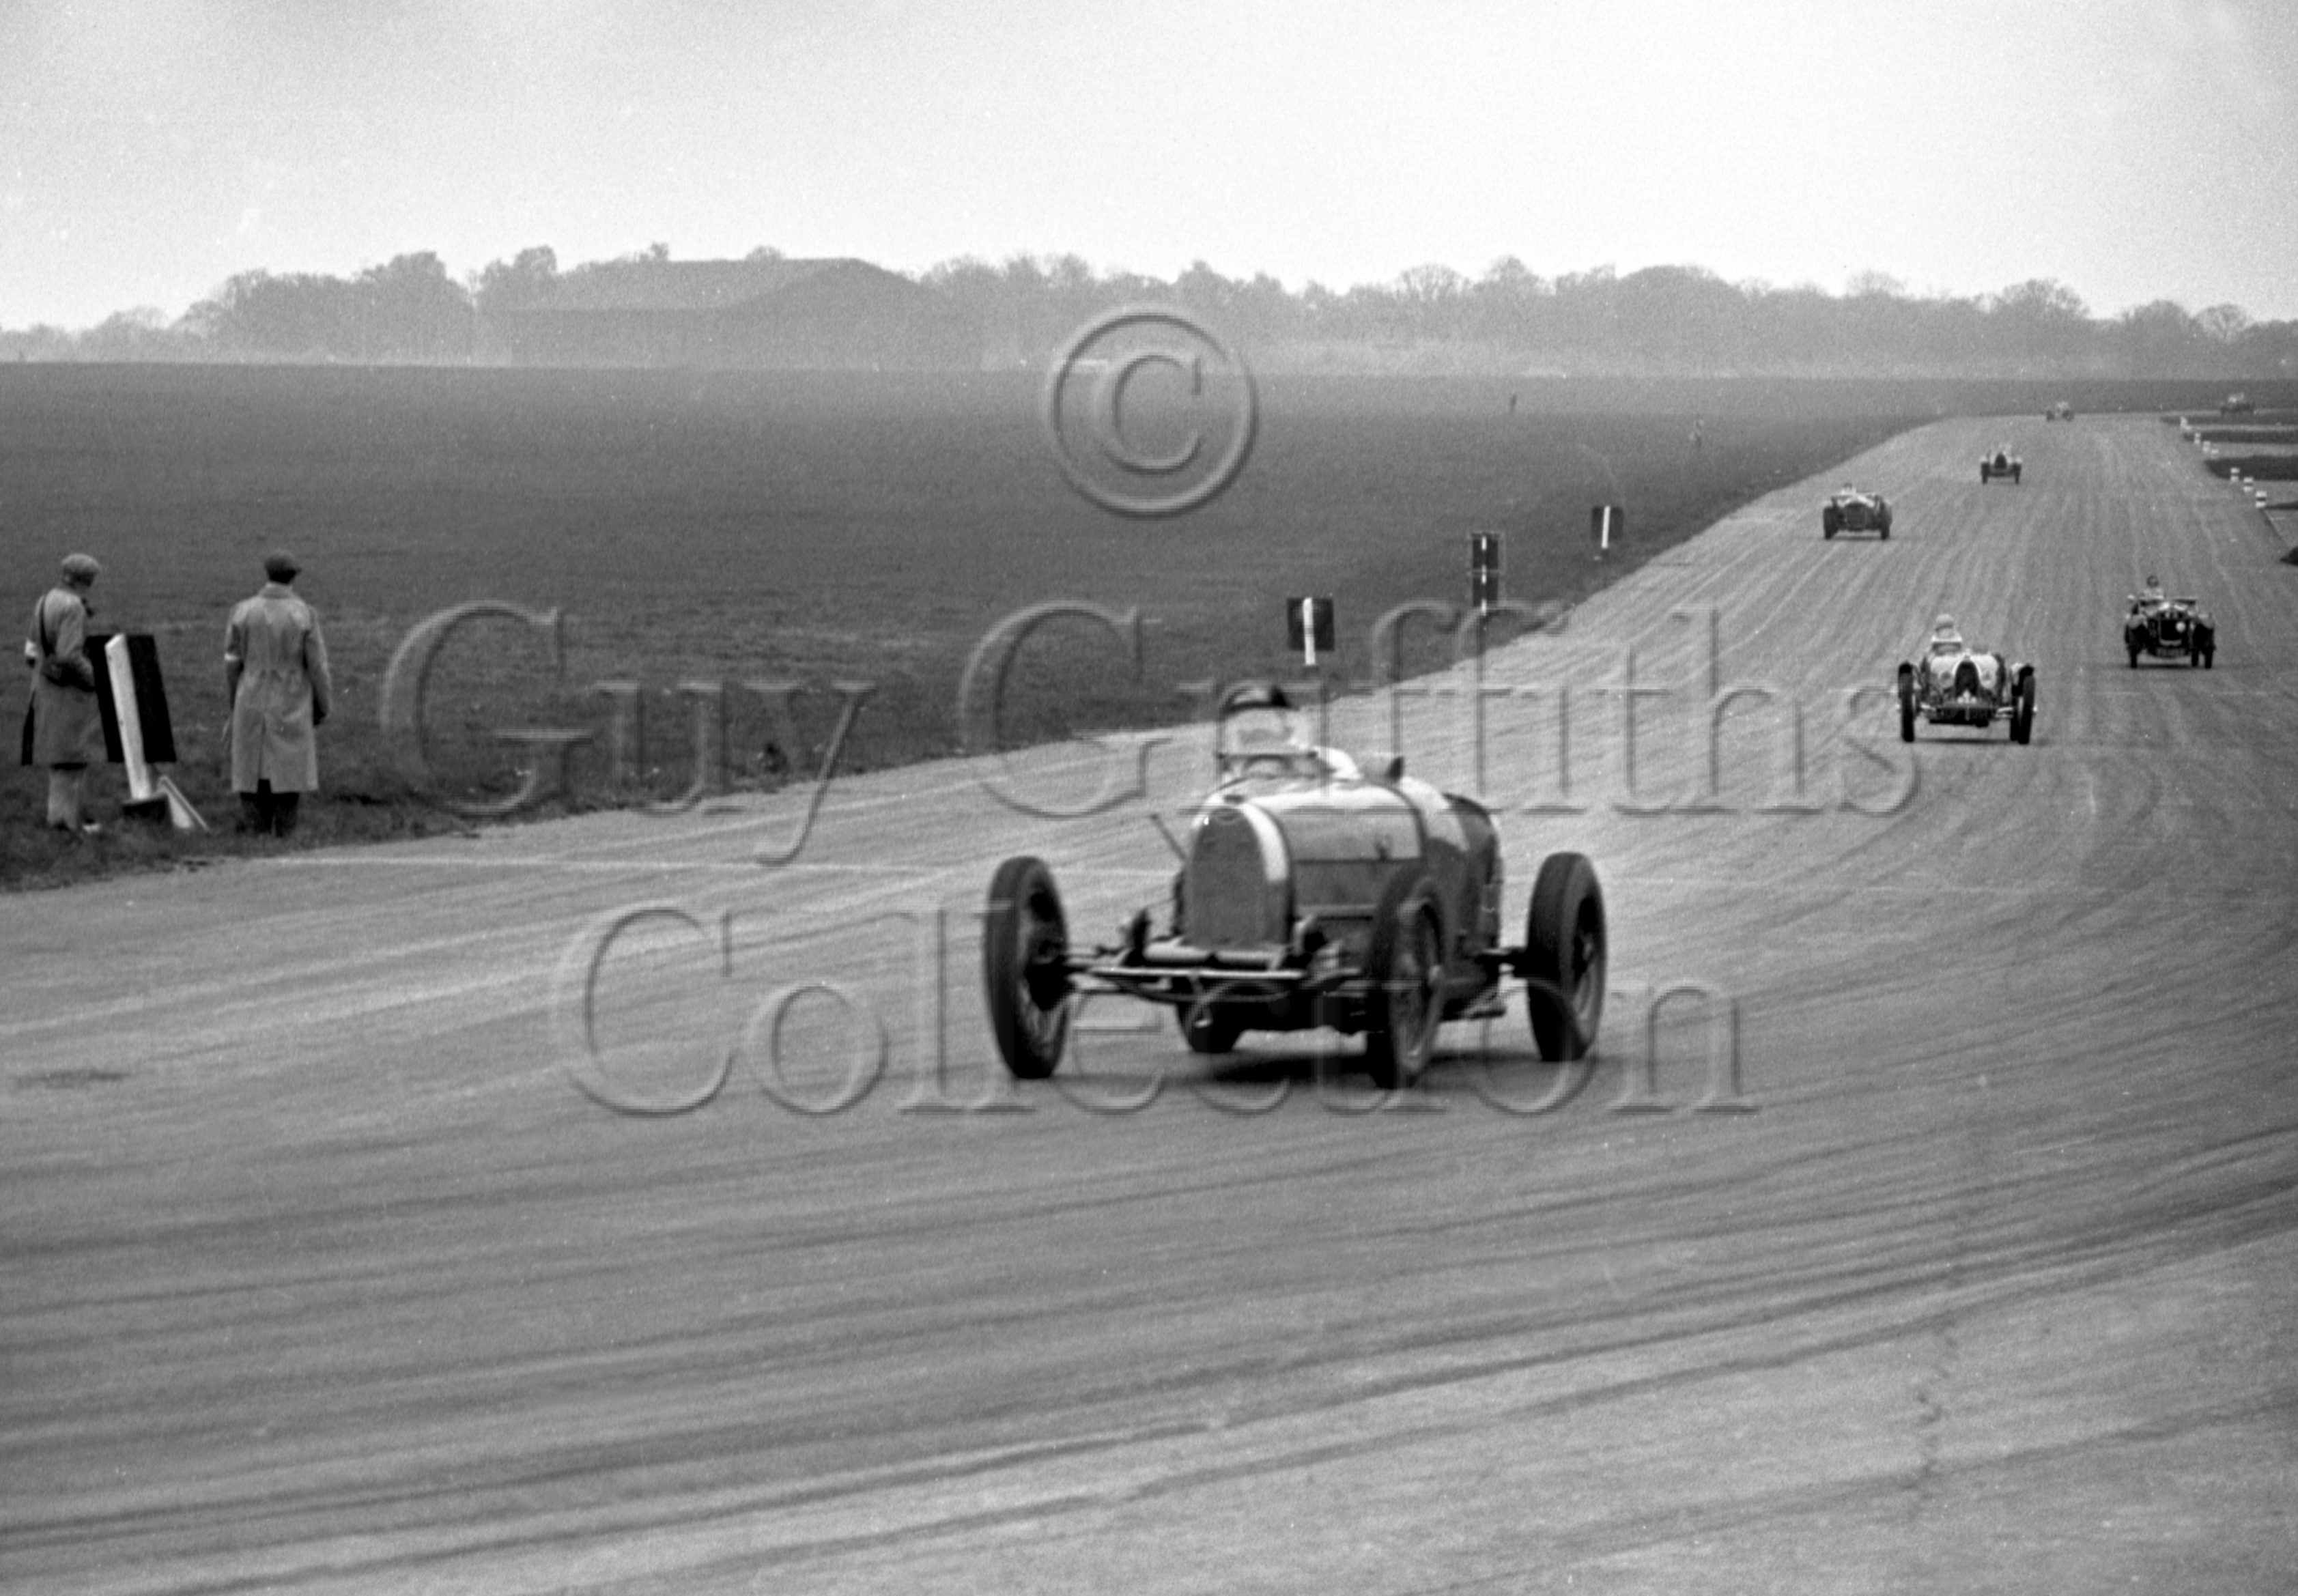 43-616–J-Ching–Bugatti–Silverstone–19-05-1951.jpg - The Guy Griffiths Collection